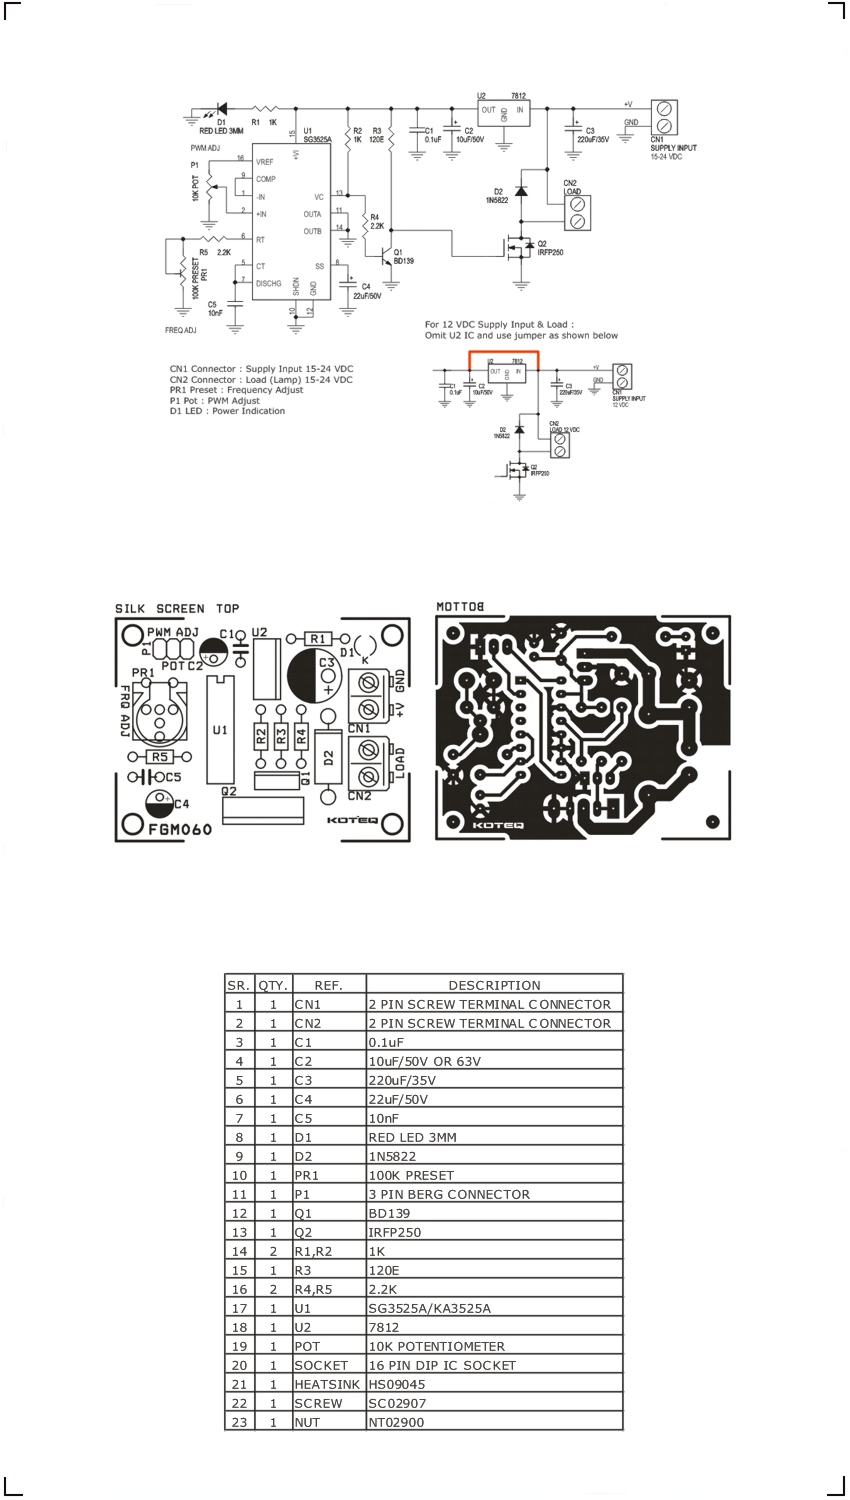 Halogen Lamp Dimmer Sg3525 Archives Circuit Ideas I Projects Soft Start For 12 Volt Lamps High Current Helogen 1